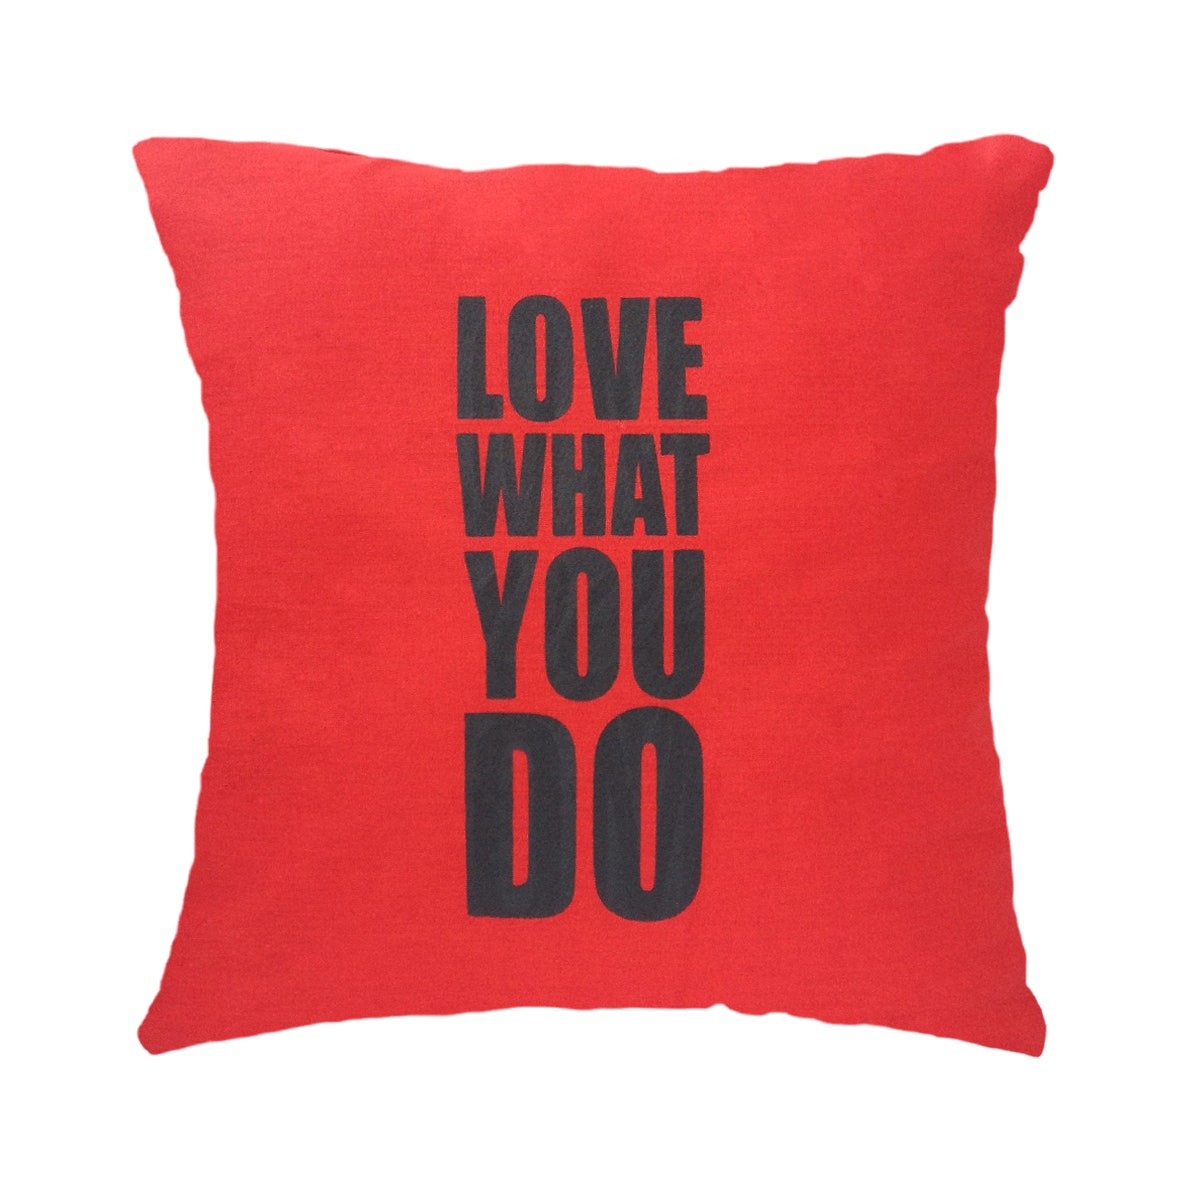 Stiletto In Style Cushion Cover Love What You Do (Red) 40 X 40Cm